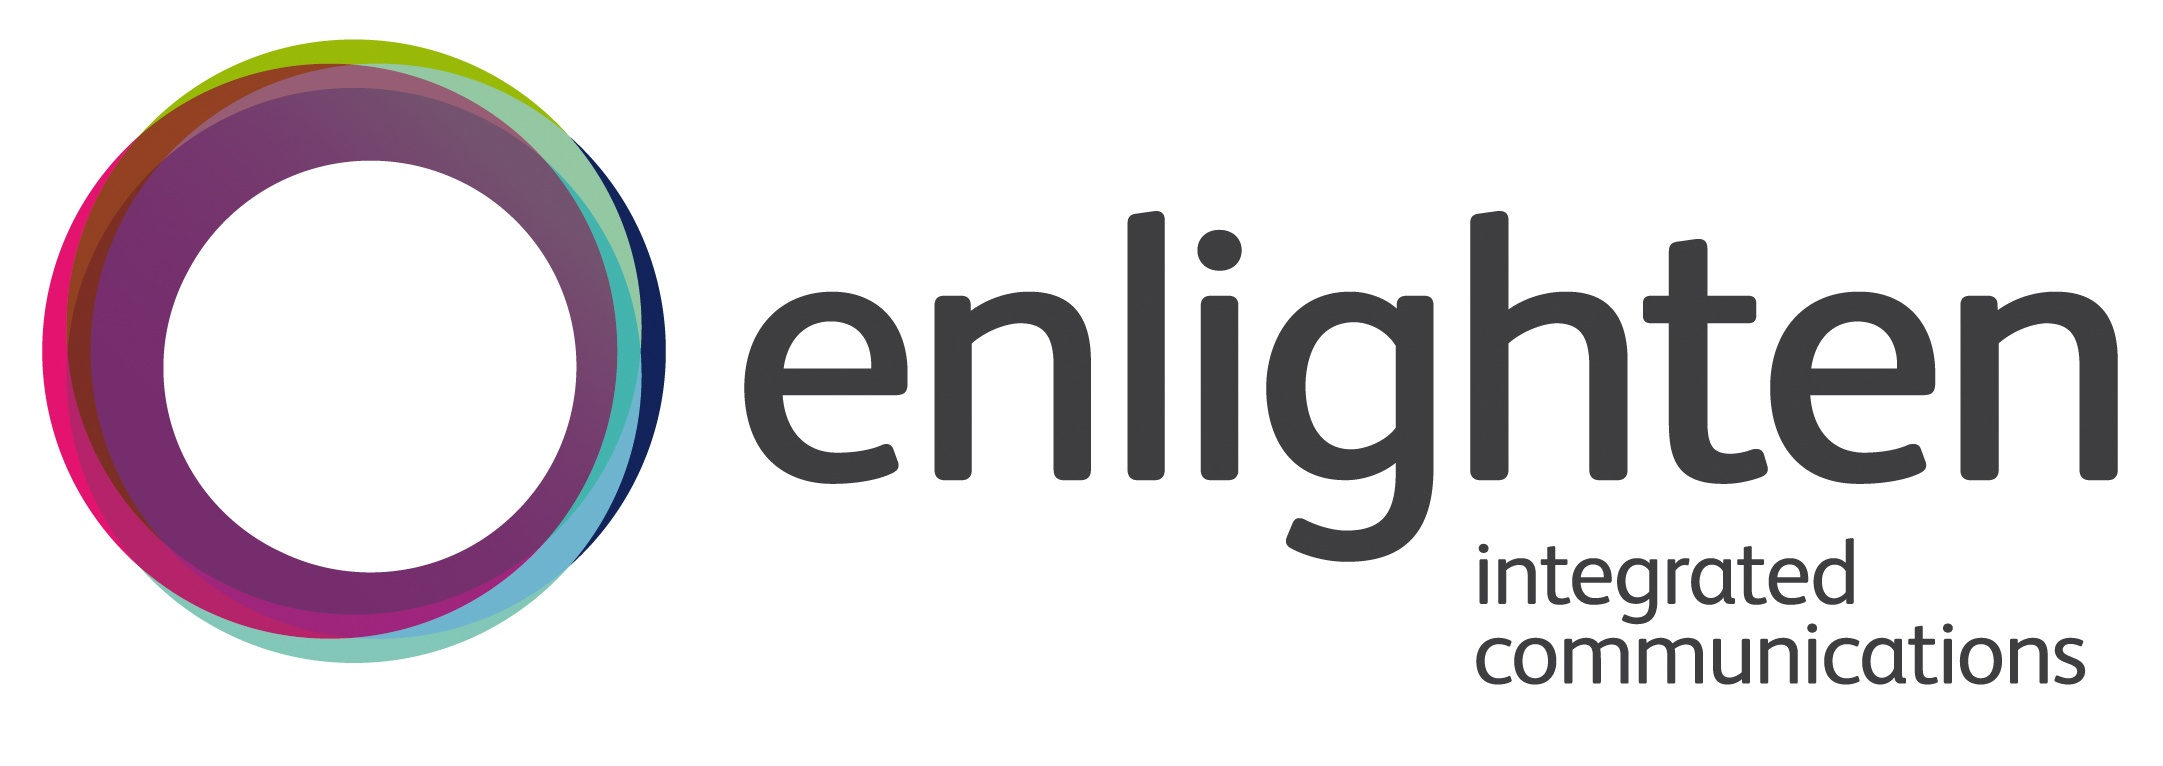 Enlighten IC an Inbound Marketing Agency for professional services (law, accountancy, financial services) and technology firms